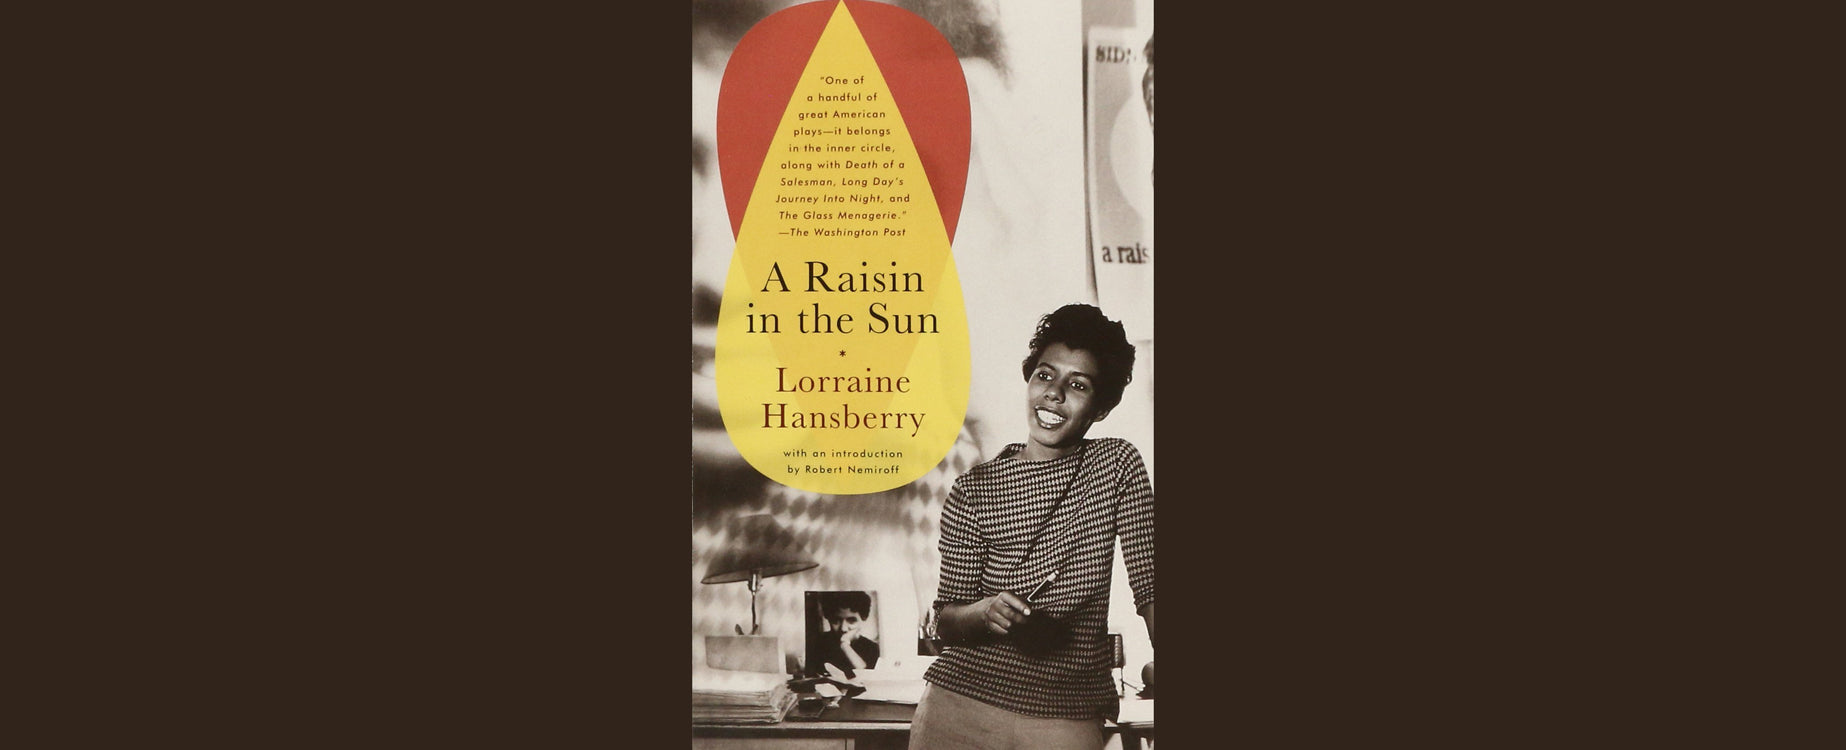 Book Review: A Raisin in the Sun by Lorraine Hansberry